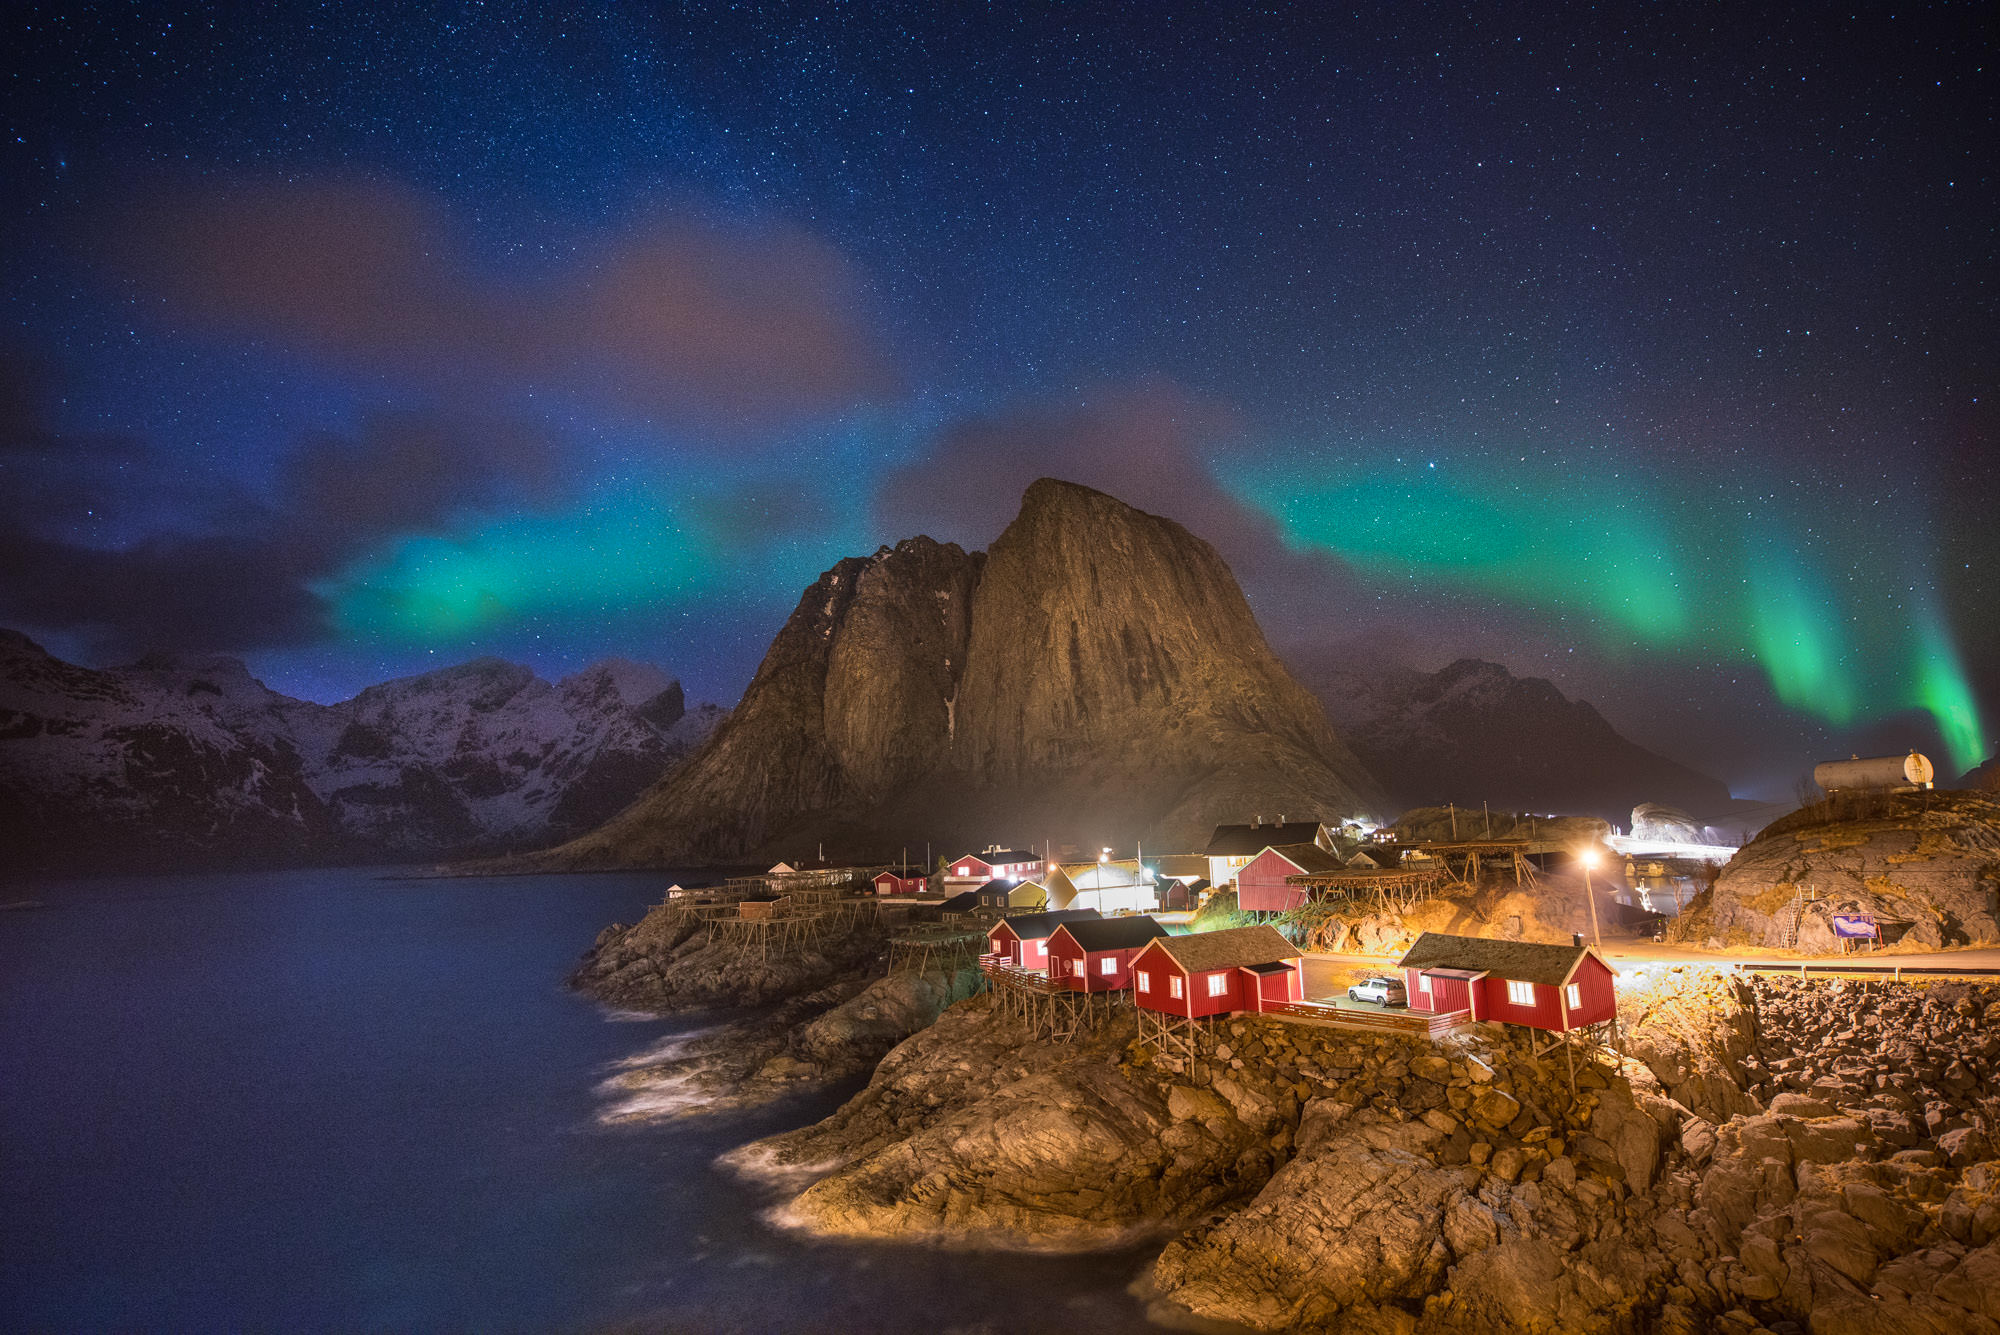 A fishing village with small red houses on the coast in Norway at night with the Northern Lights overhead